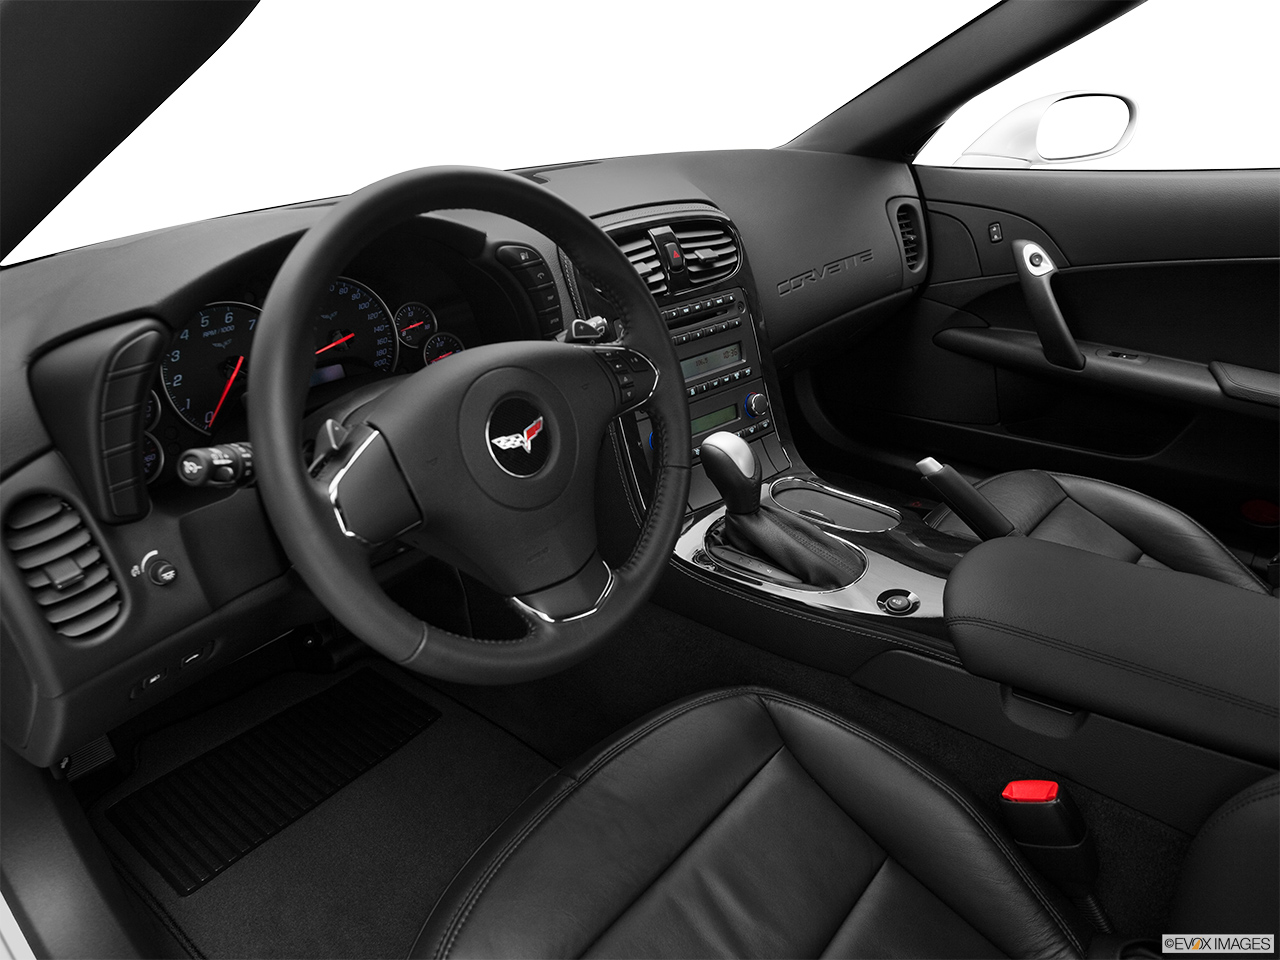 Chevrolet Corvette 2012 interior